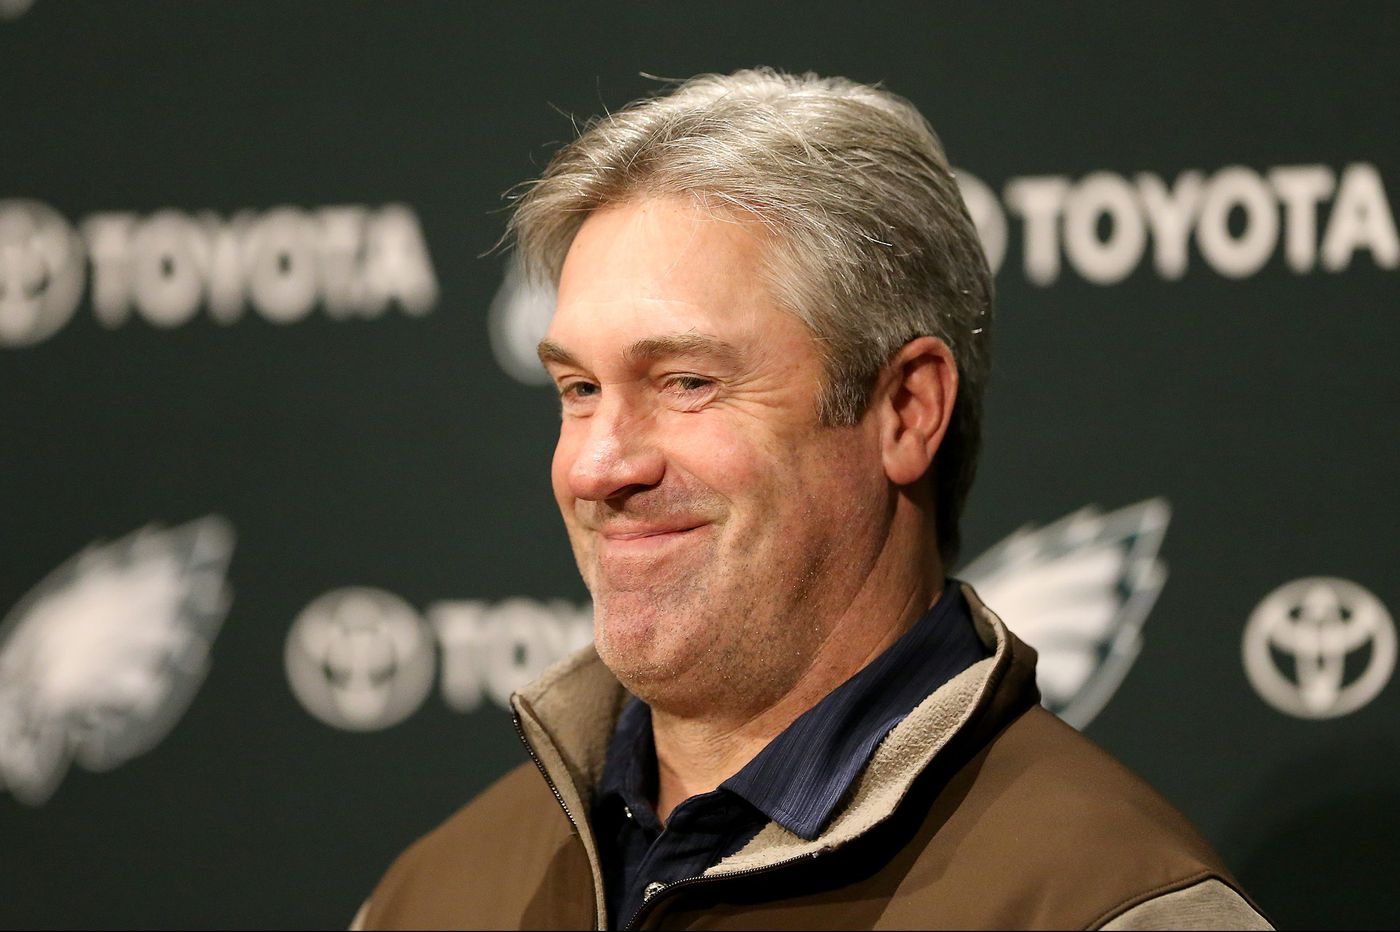 Eagles' Doug Pederson on White House controversy: 'What you have seen and heard is enough'